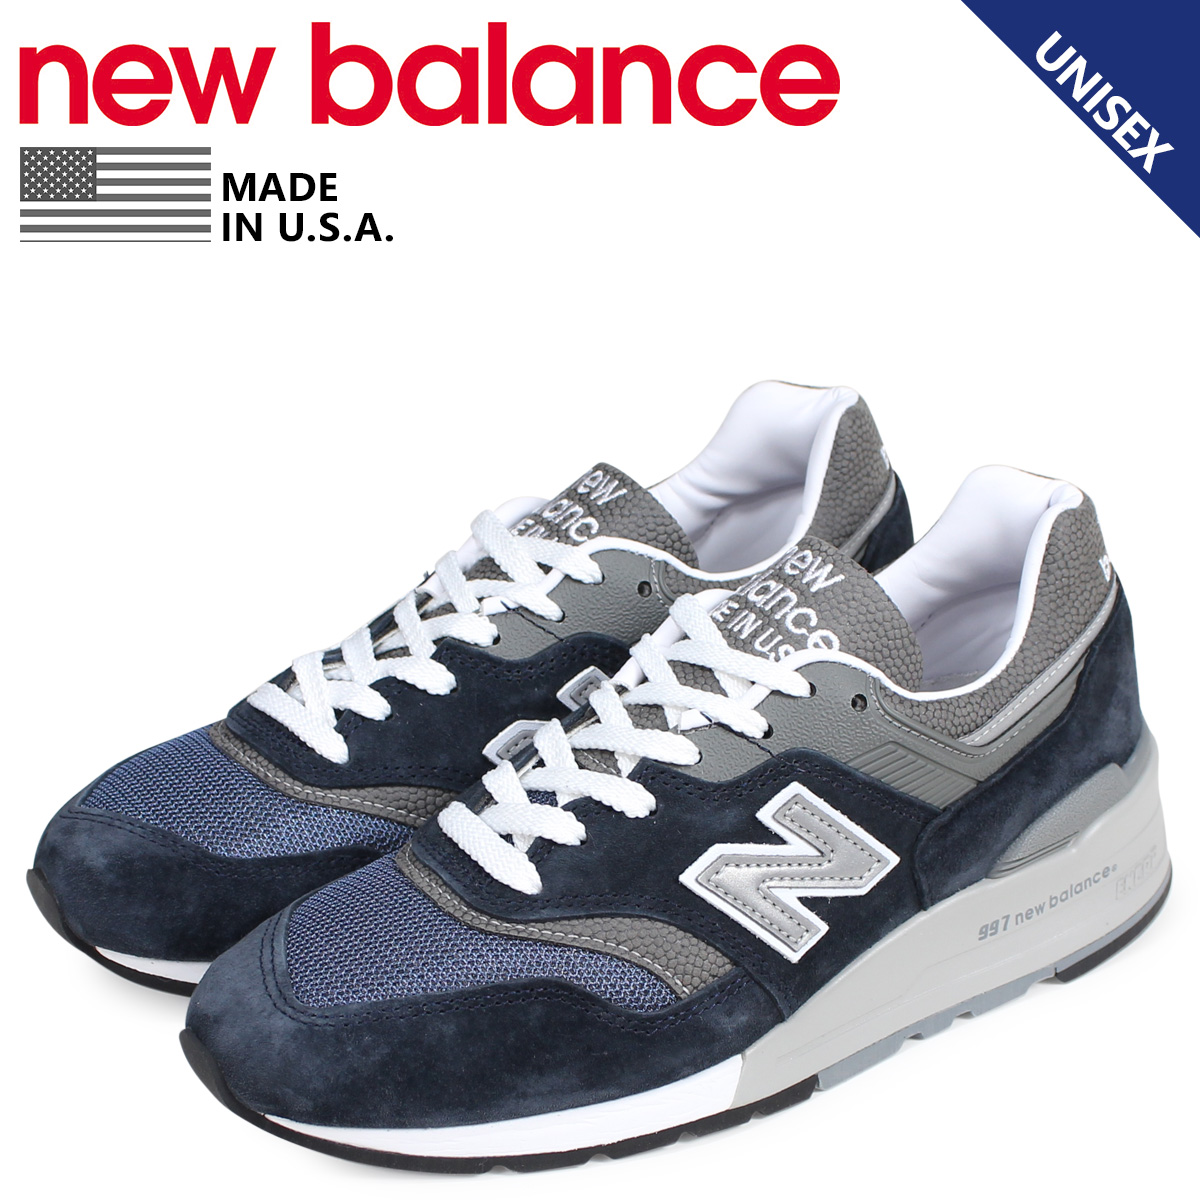 7292222c00988 new balance New Balance 997 sneakers men gap Dis D Wise MADE IN USA navy  M997NV ...